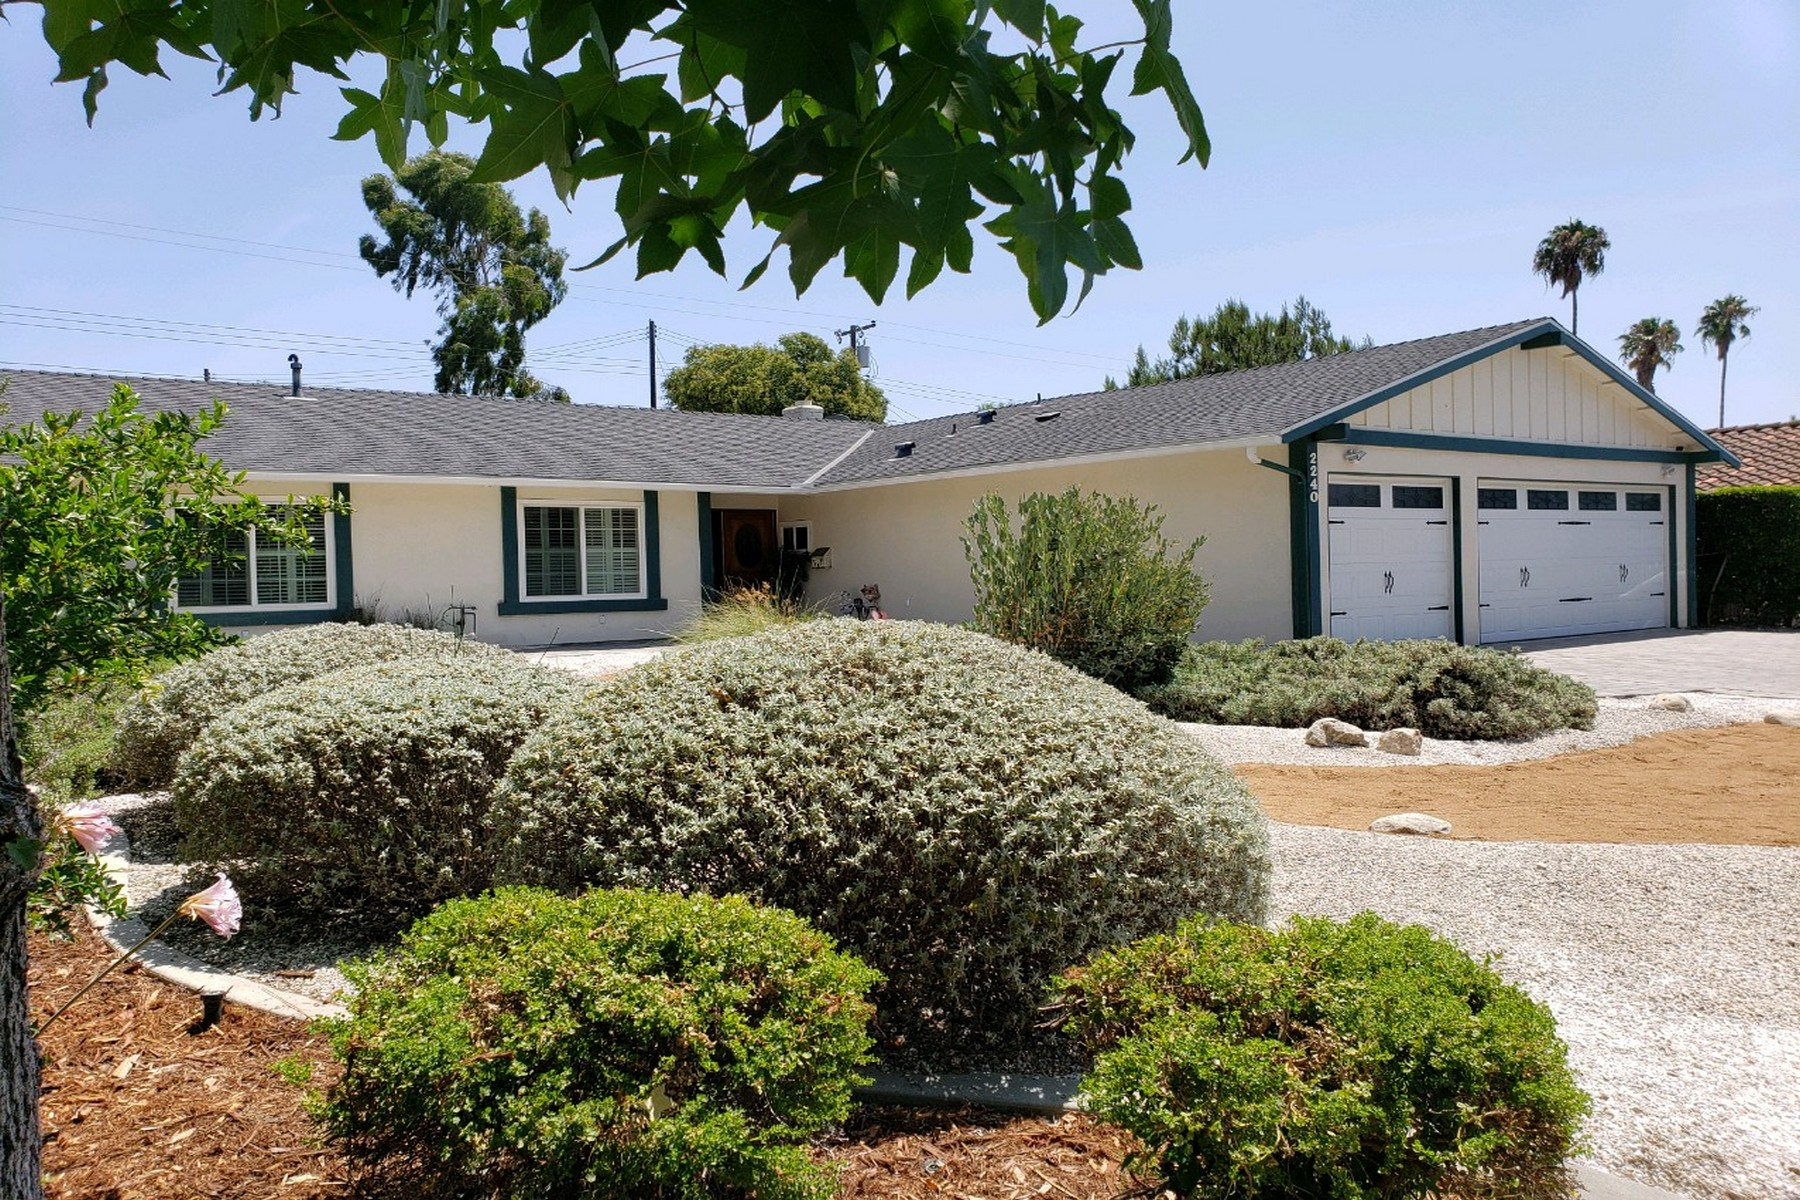 Single Family Homes for Sale at 2240 La Sierra Way, Claremont California 91711 2240 La Sierra Way Claremont, California 91711 United States